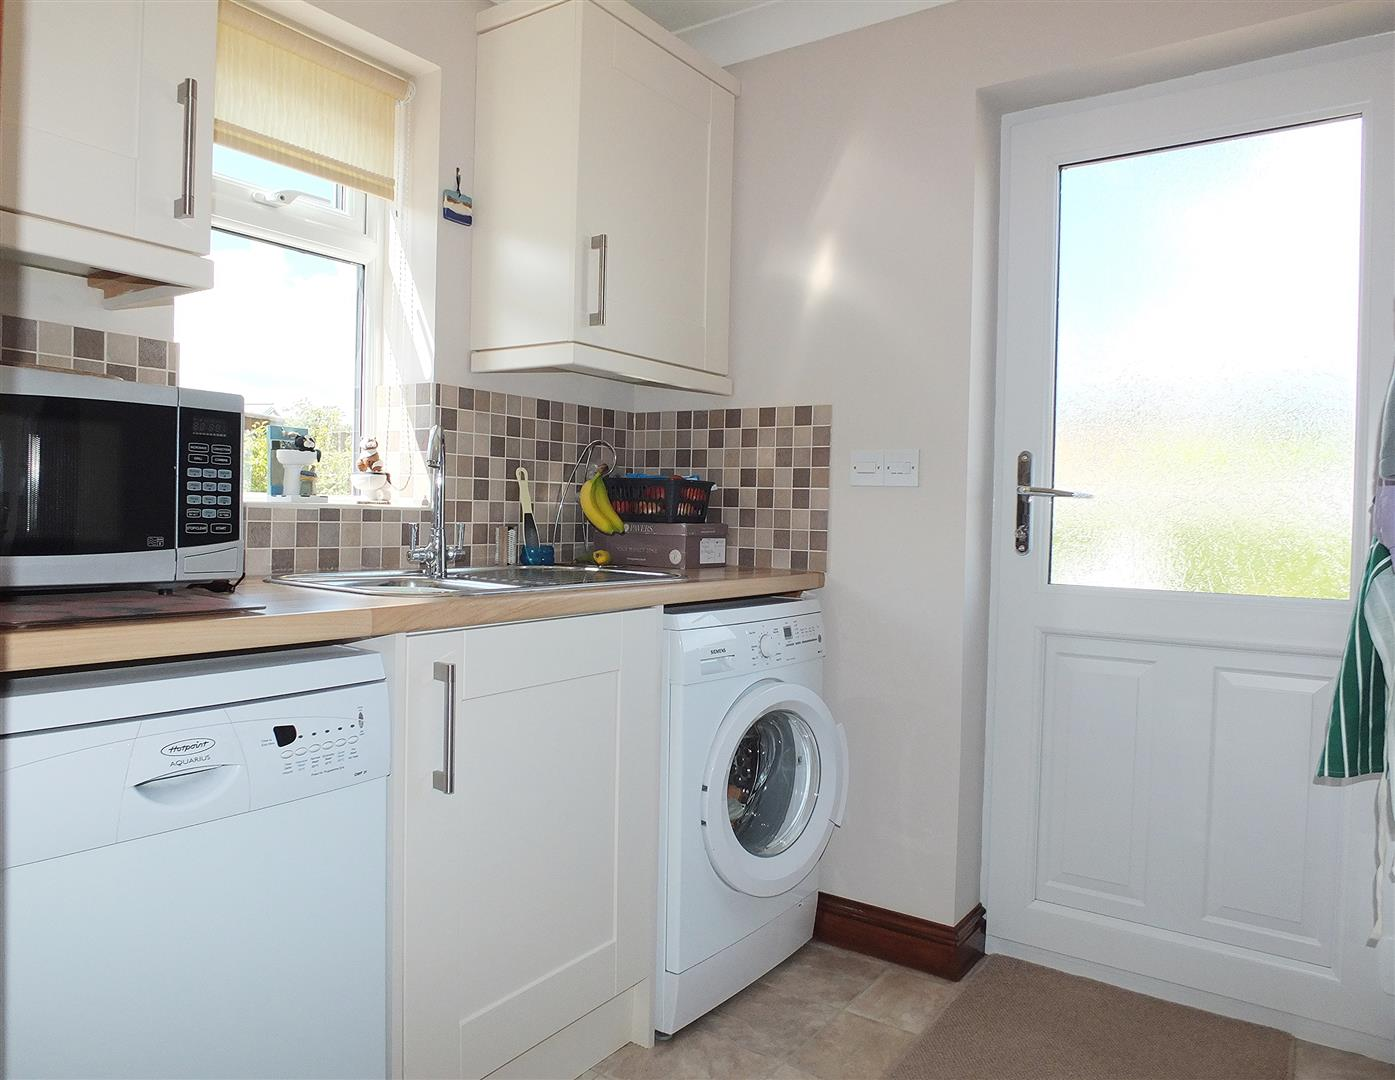 3 bed detached bungalow for sale in Long Sutton Spalding, PE12 9FT 7